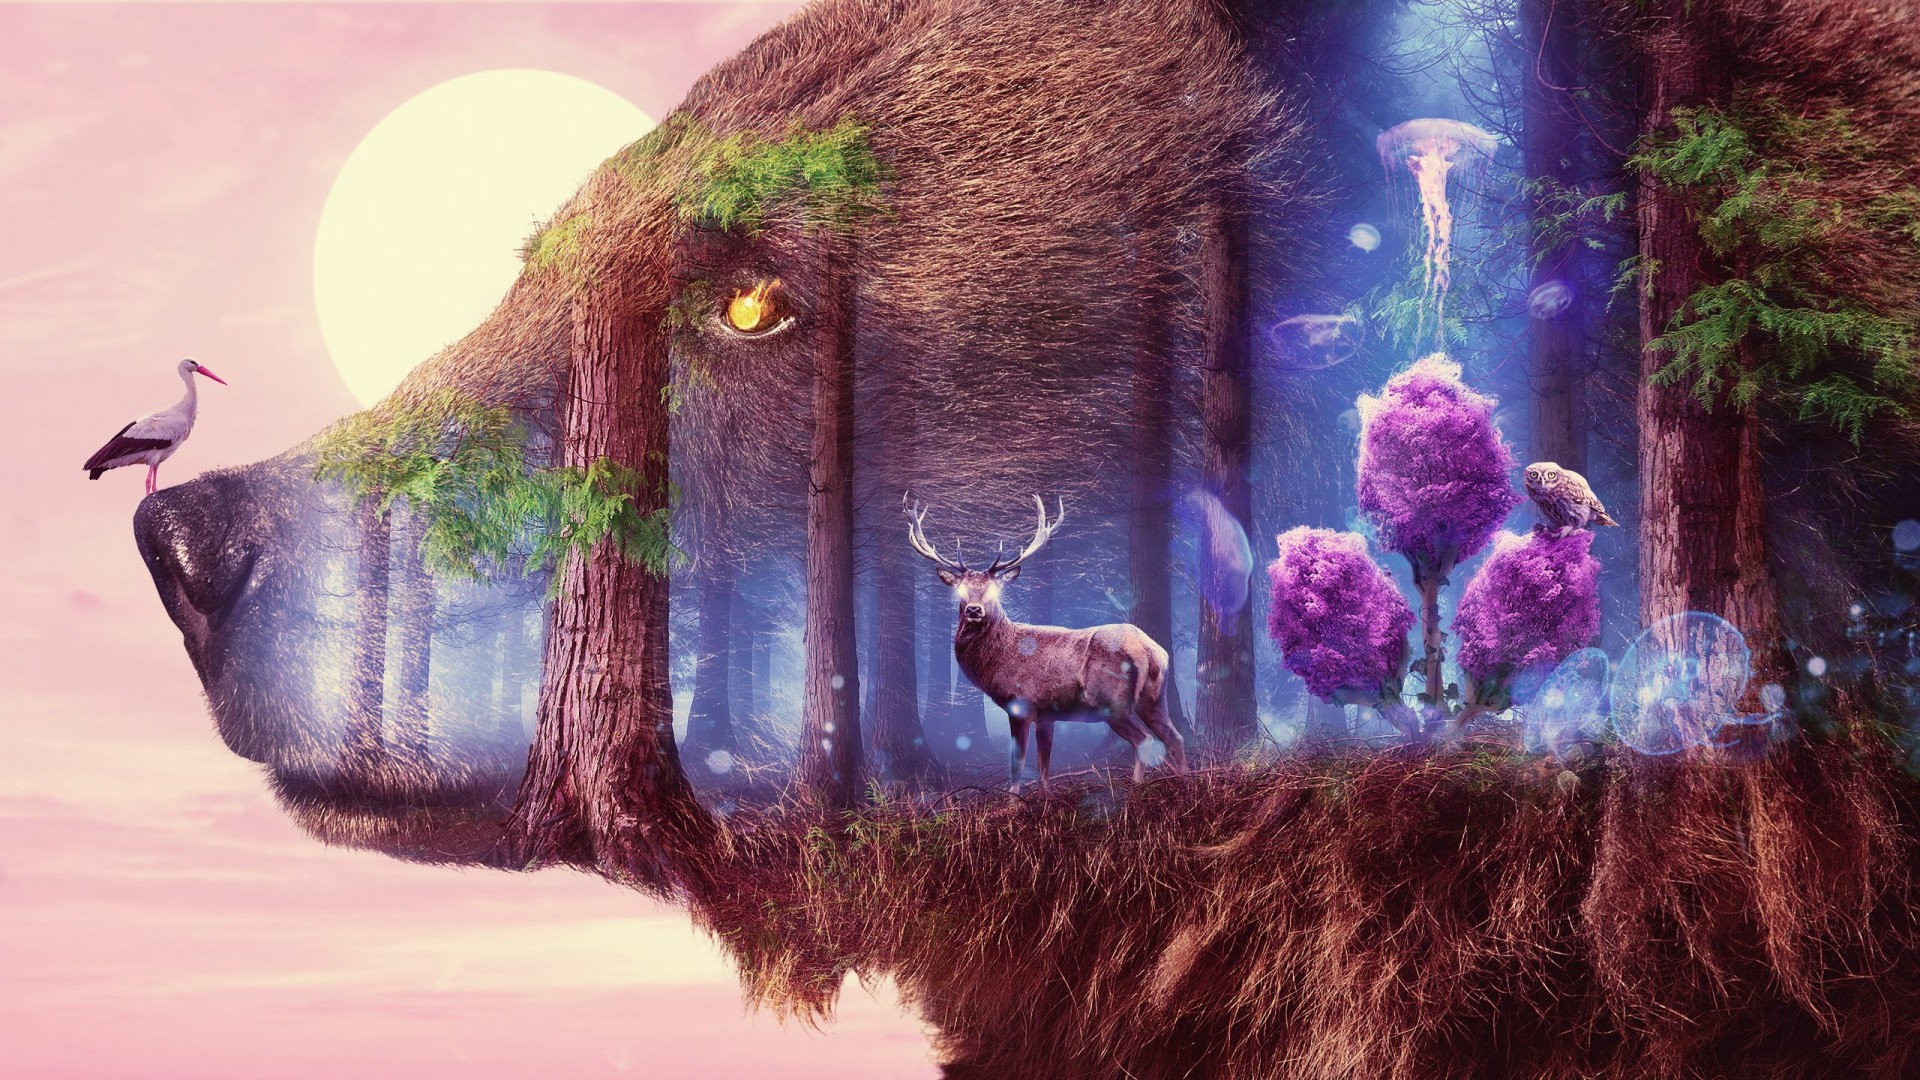 Cute Cartoon Wallpaper Download Mystical Wildlife Wallpapers Hd Wallpapers Id 22651